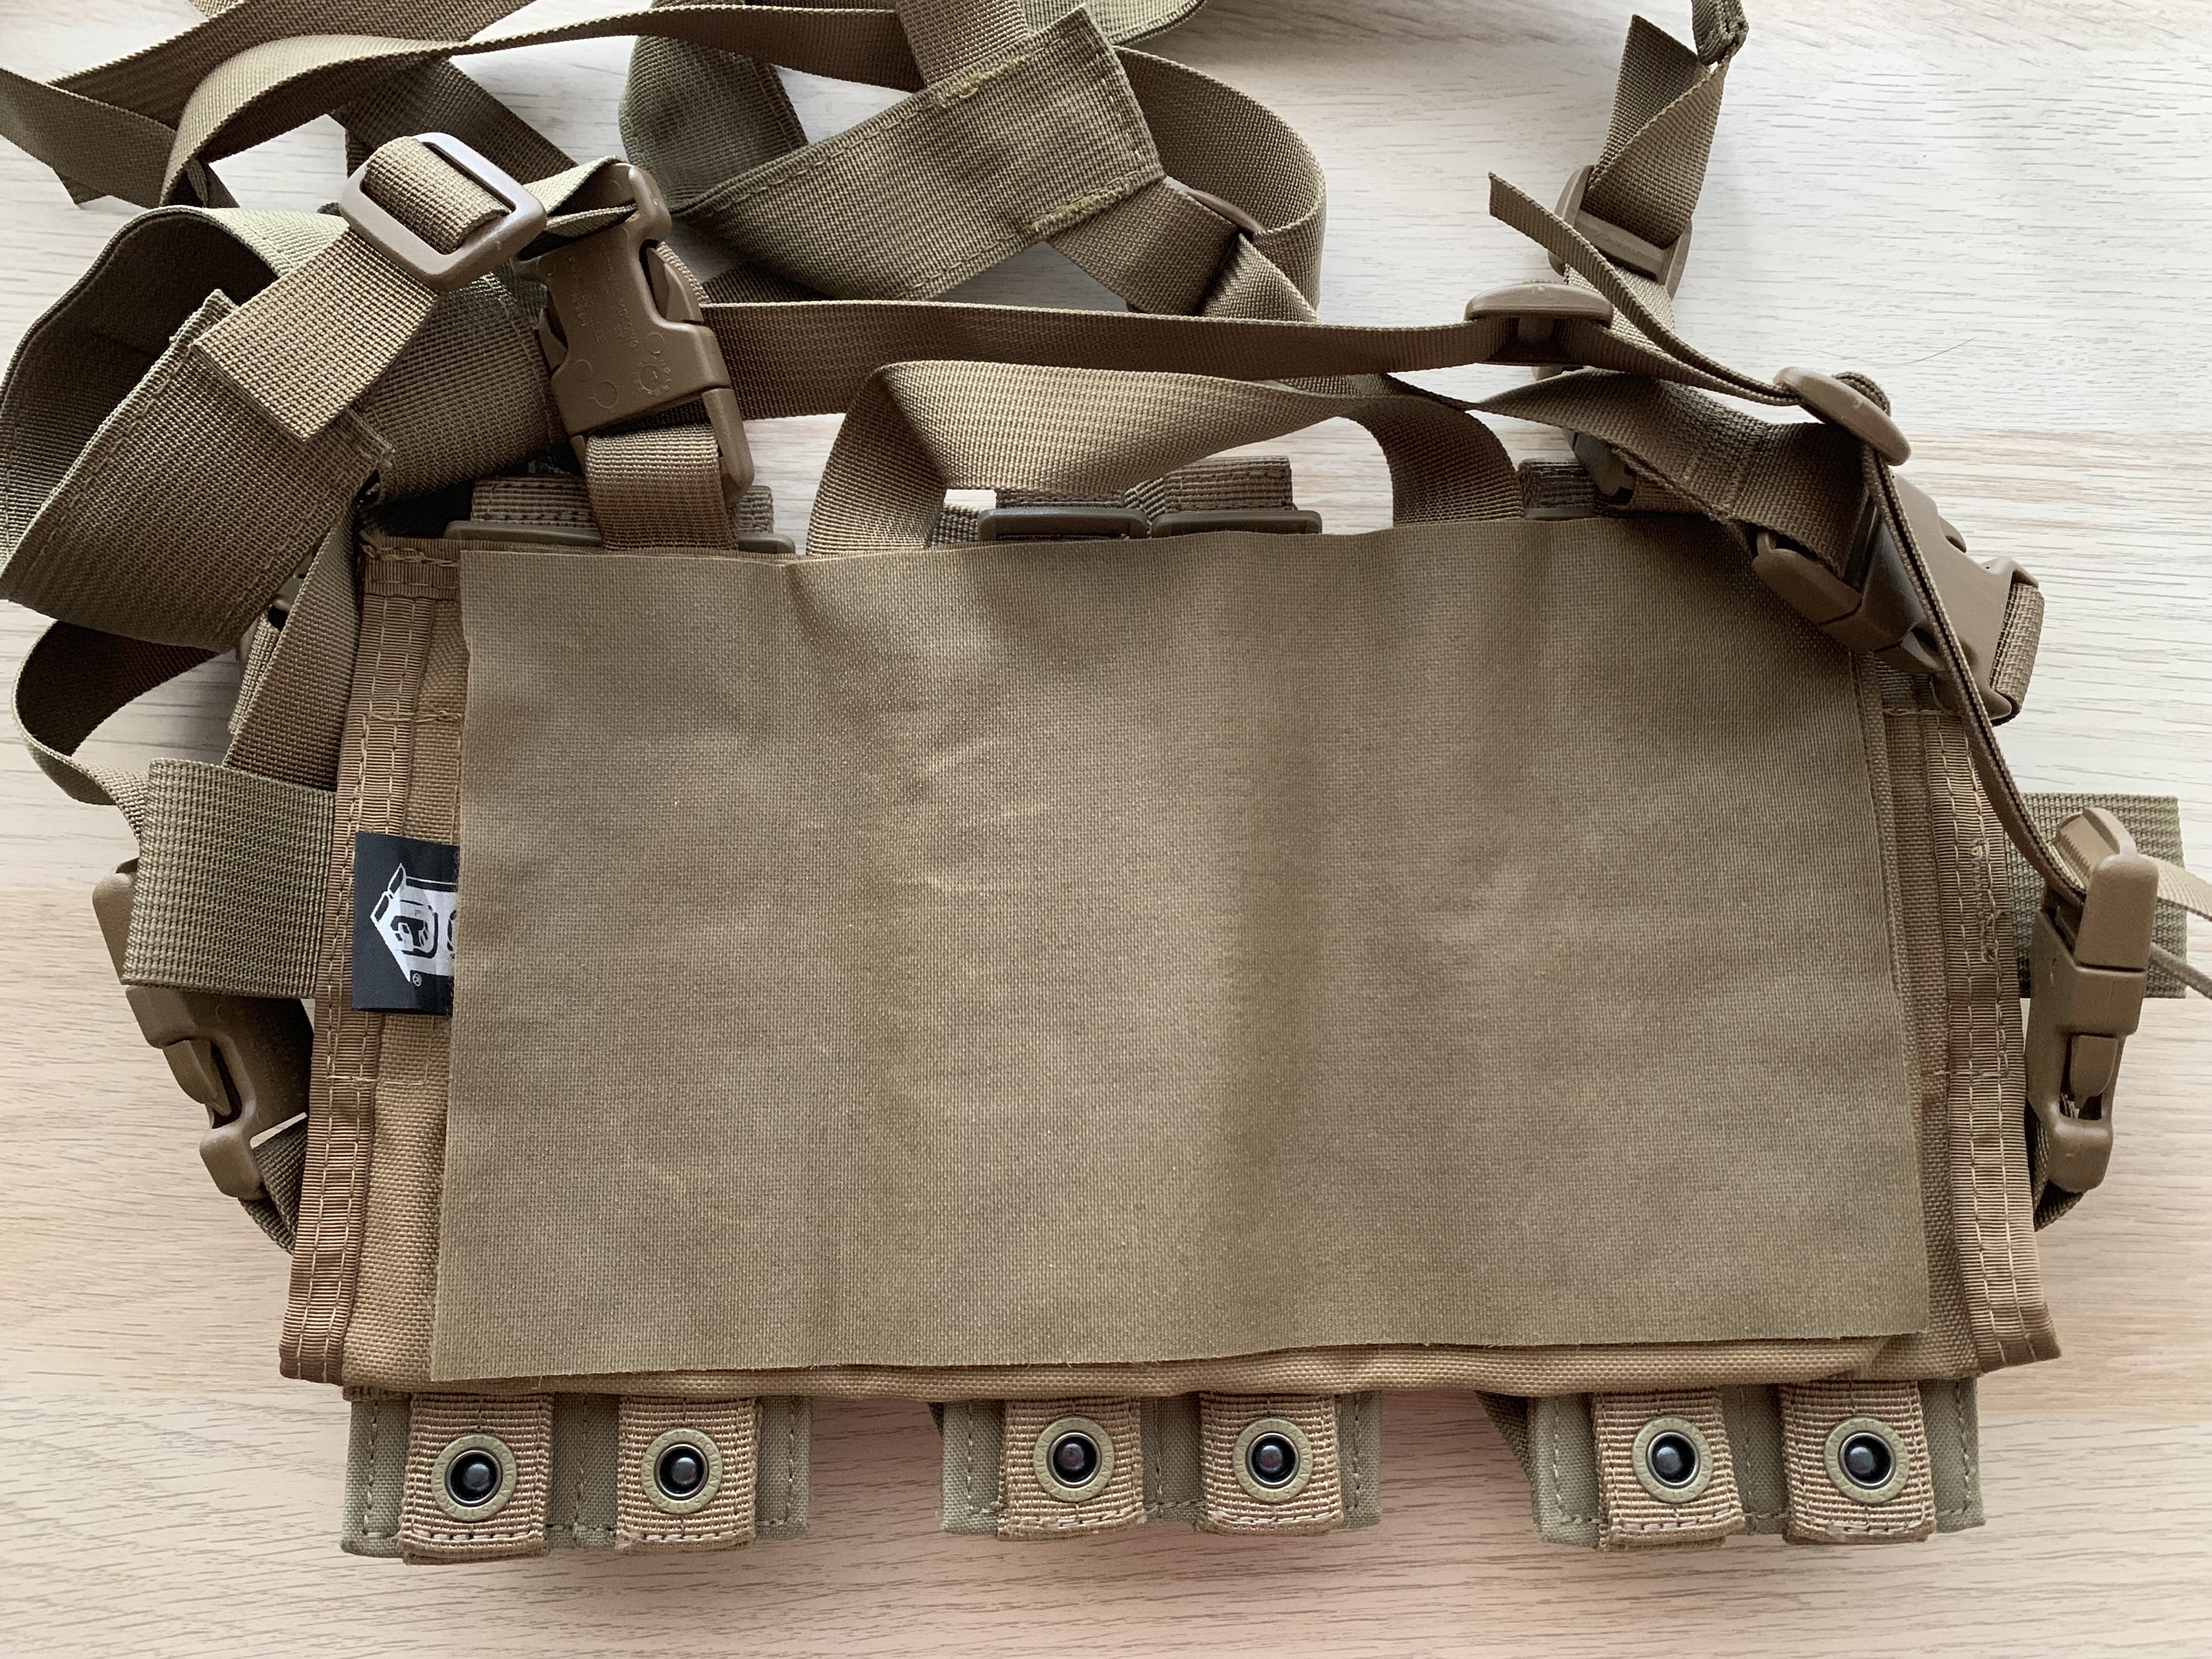 WTS: HK MP5 Mags / Mag Coupler / Chest Rig-h1gw-be4tuaqe-l-ayvkyw.jpg